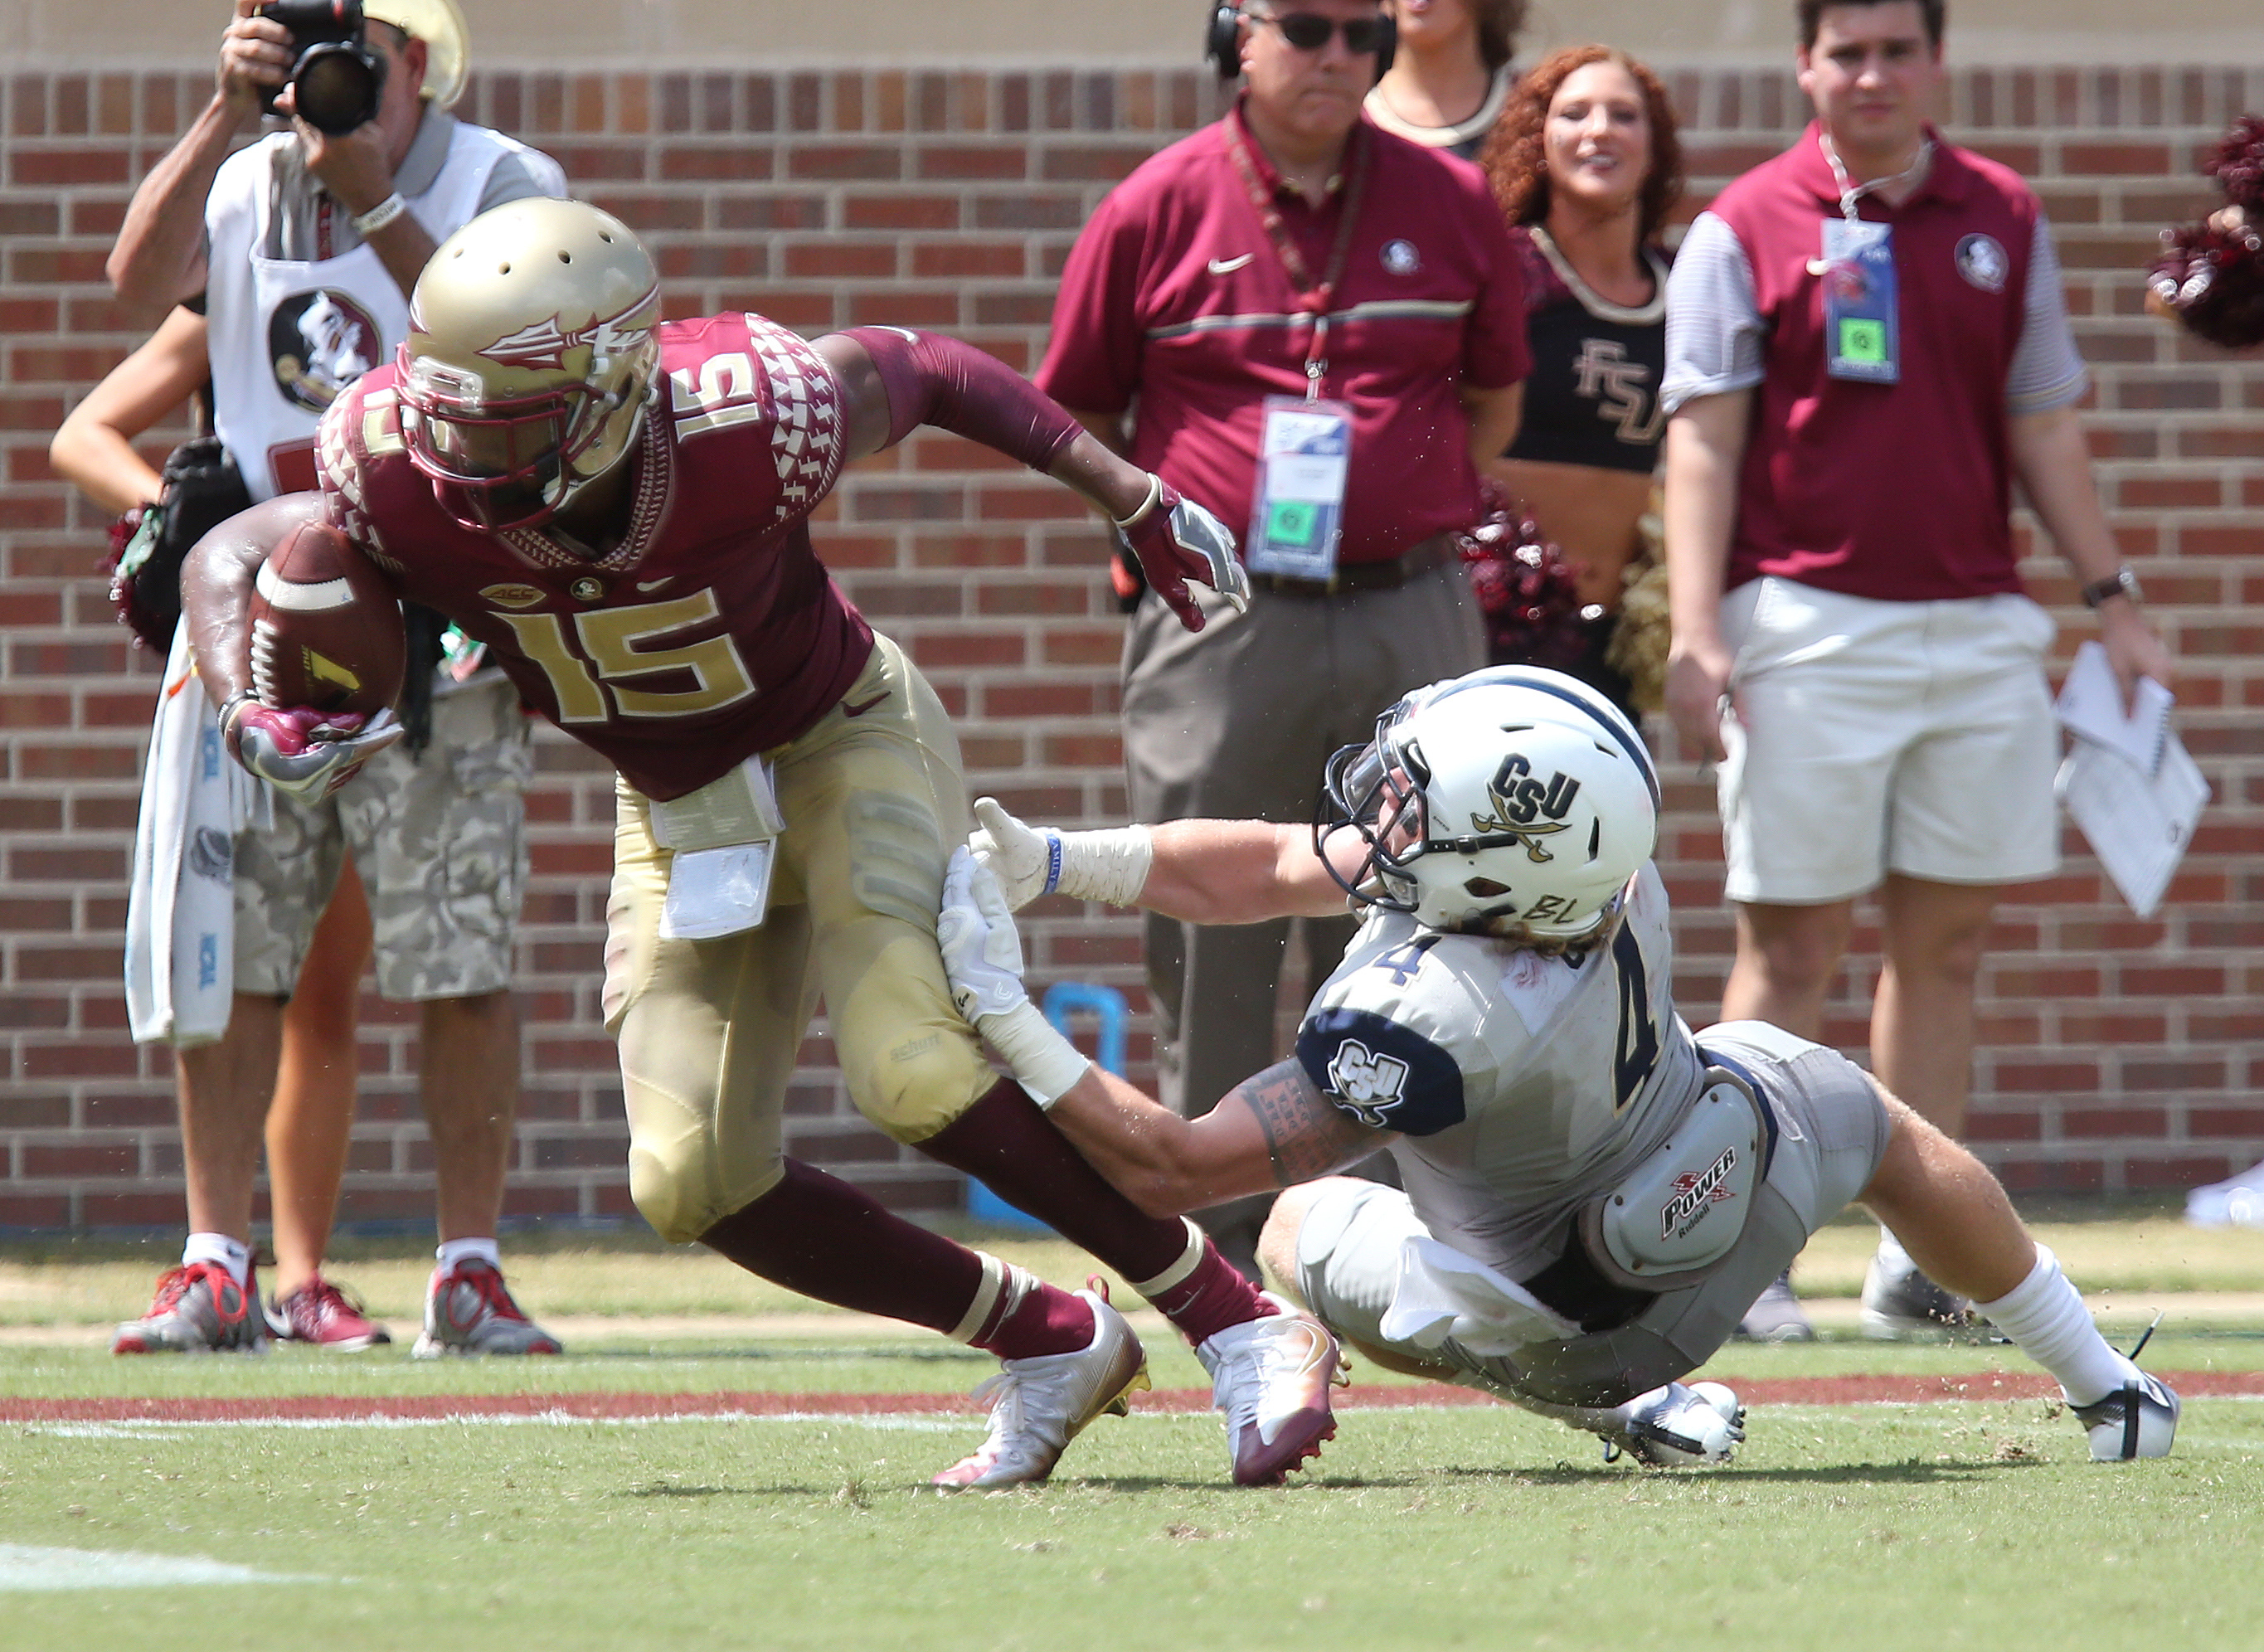 Florida State's Travis Rudolph escapes the tackle attempt of Charleston Southern's D.J. Curl to score his second touchdown in the first half of an NCAA college football game, Saturday, Sept. 10, 2016, in Tallahassee, Fla. (AP Photo/Steve Cannon)